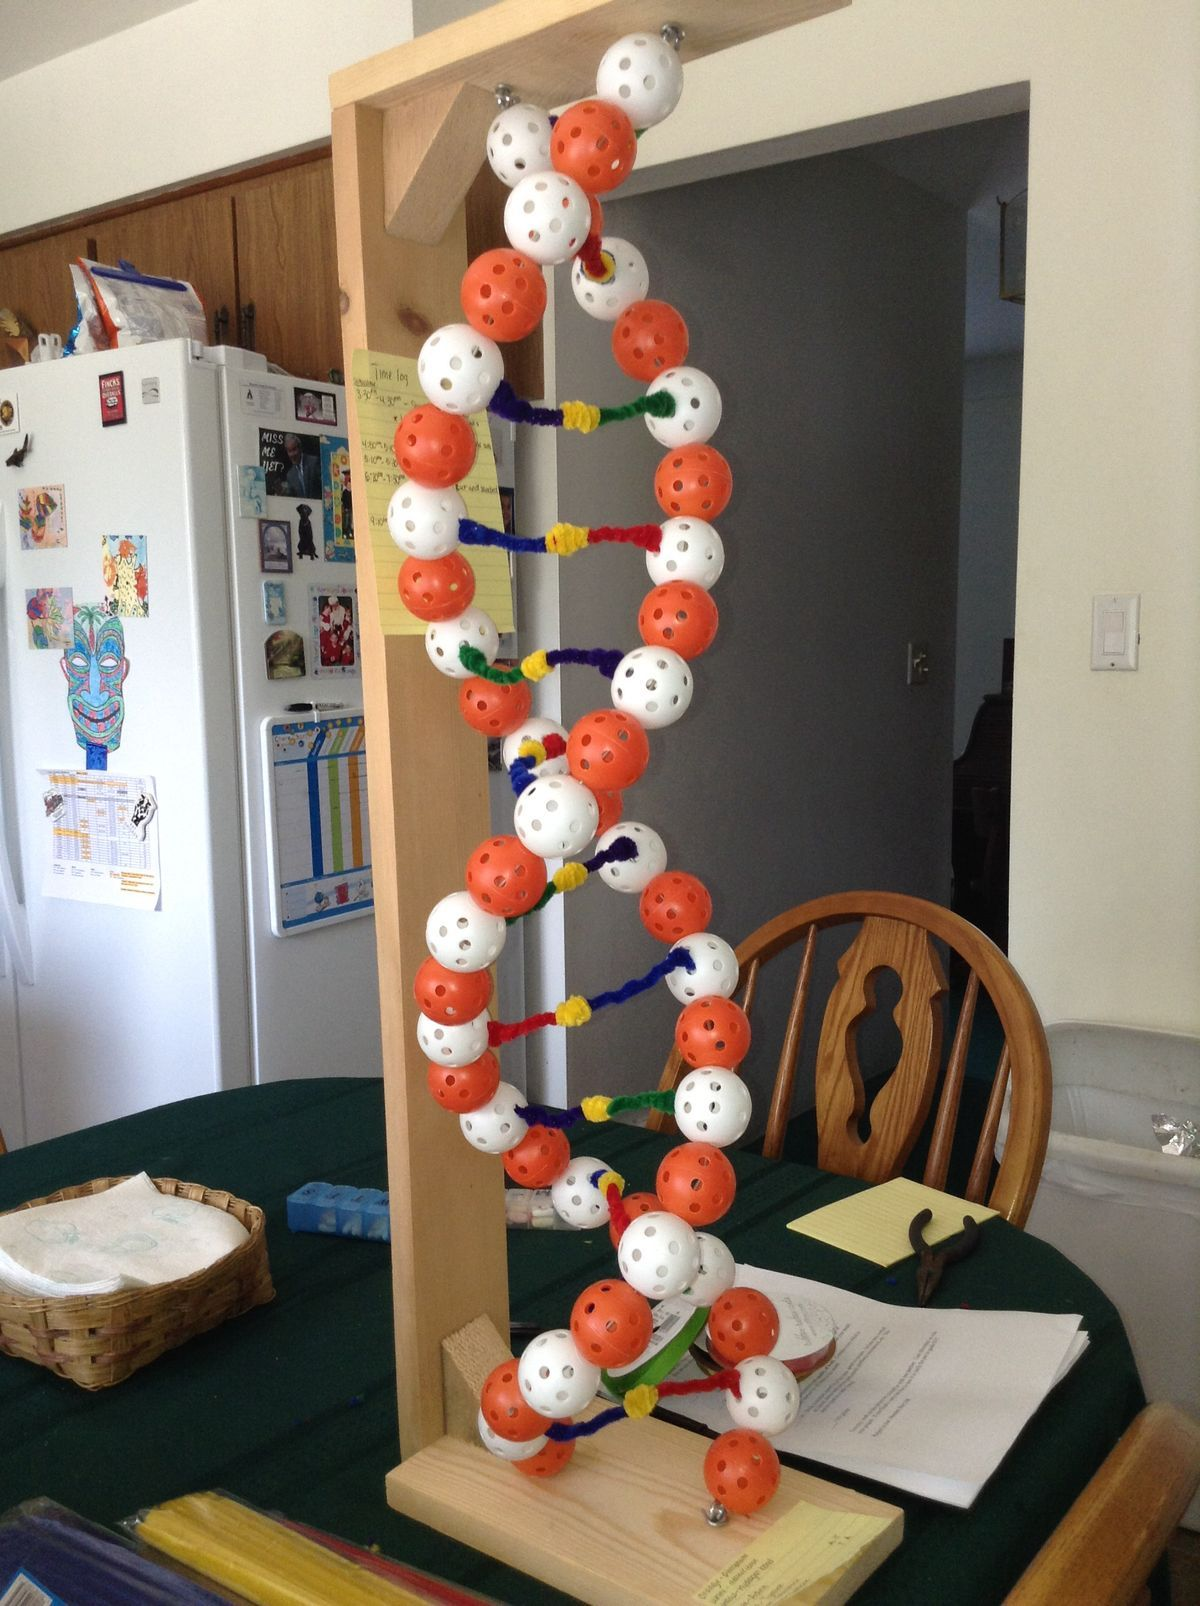 1000 images about dna on pinterest double helix lego and 1000 images about dna on pinterest double helix lego and building blocks ccuart Choice Image